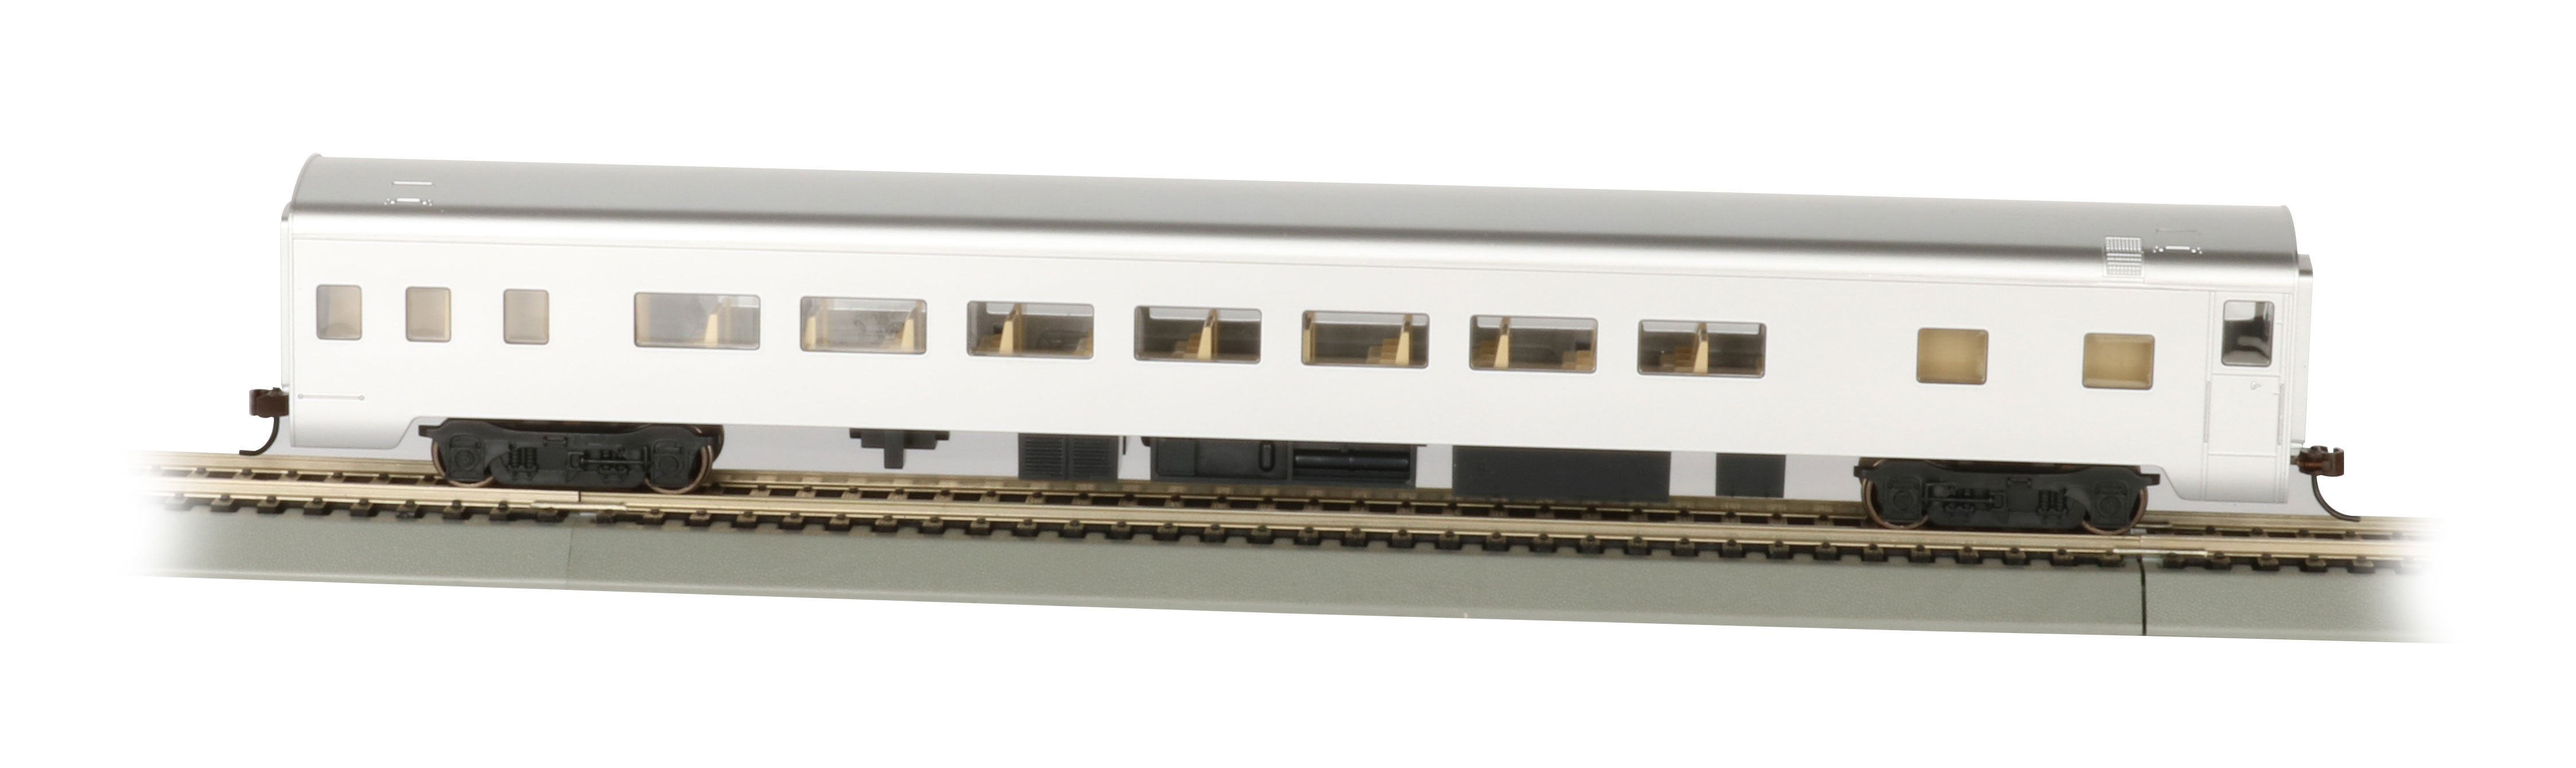 BAC14208 Bachmann Industries HO 85'SS Coach Pntd Unletter 160-14208